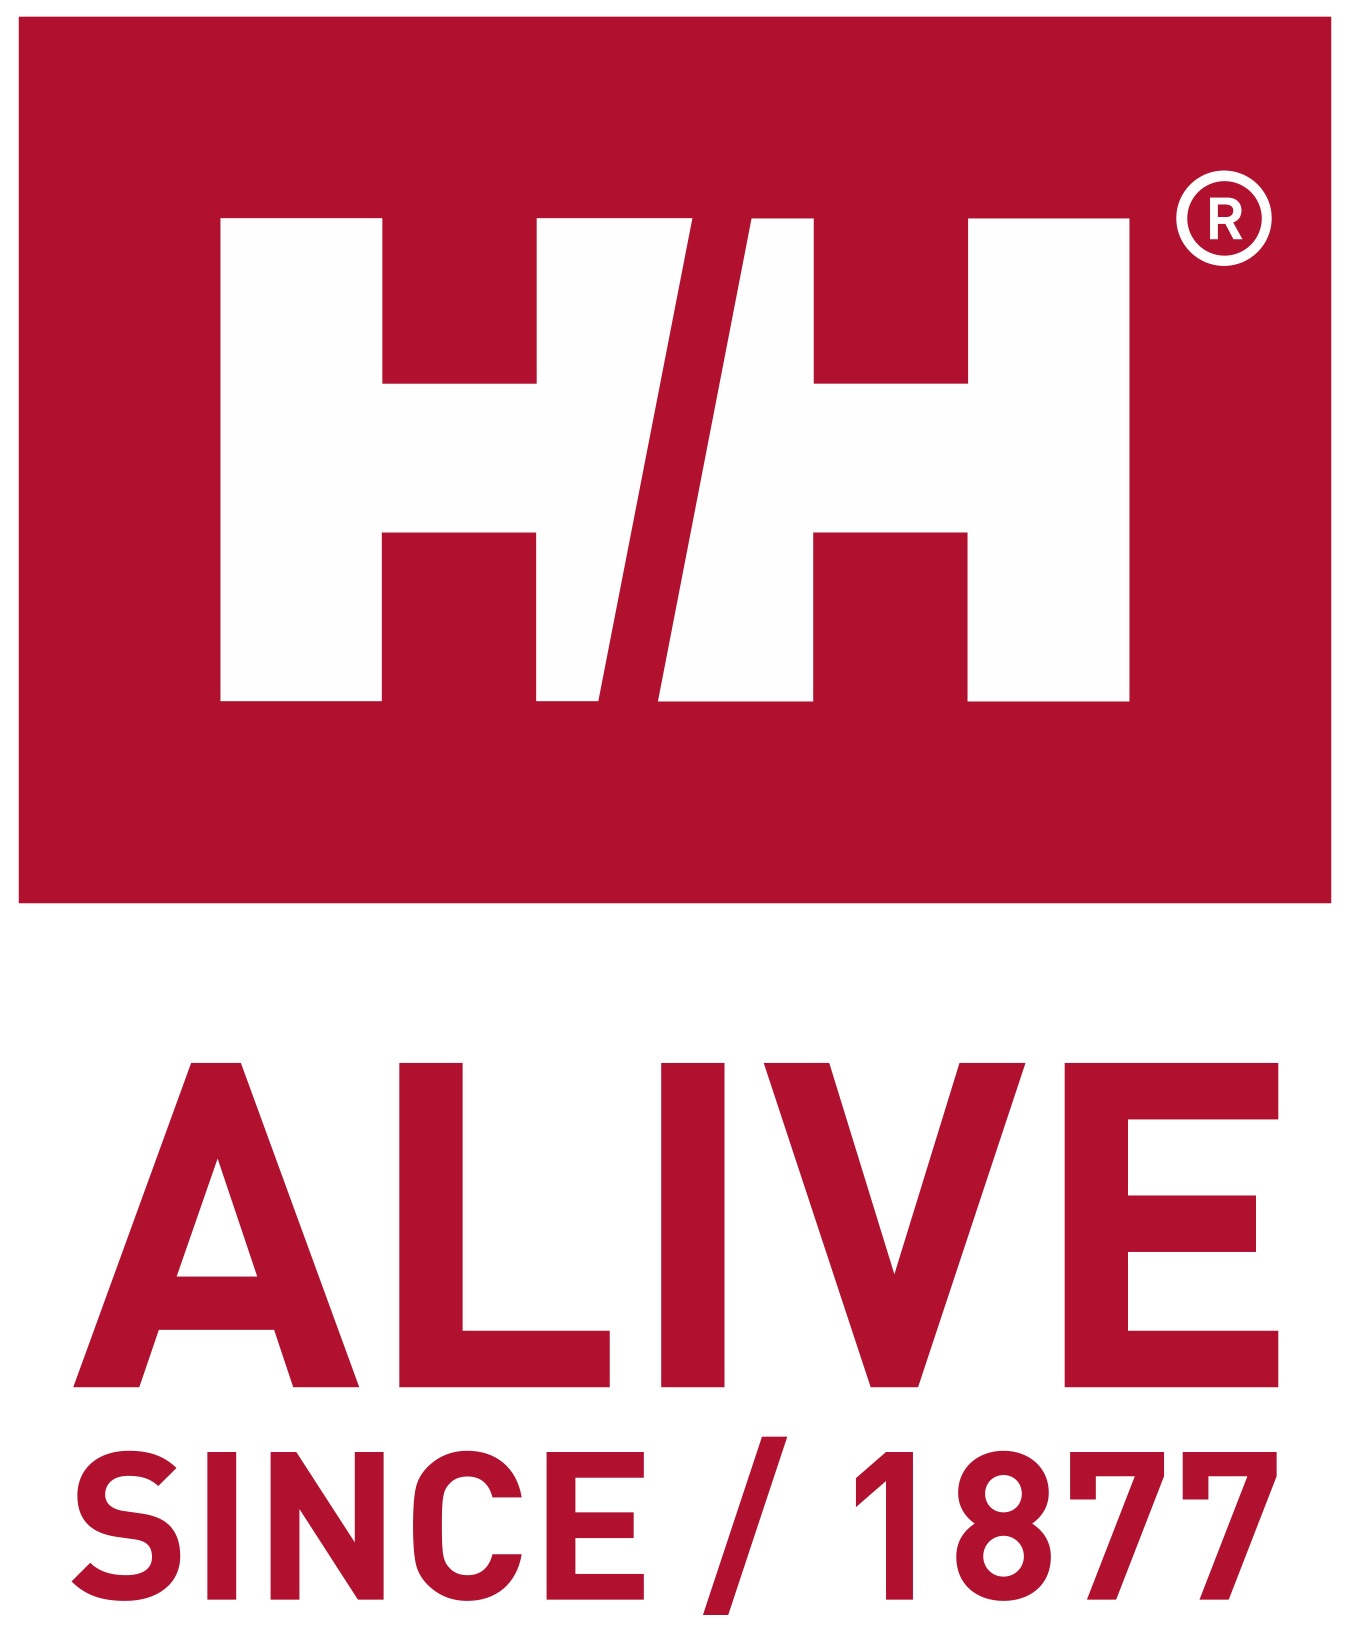 HH_Alive_9x11_Window_Sticker.jpeg